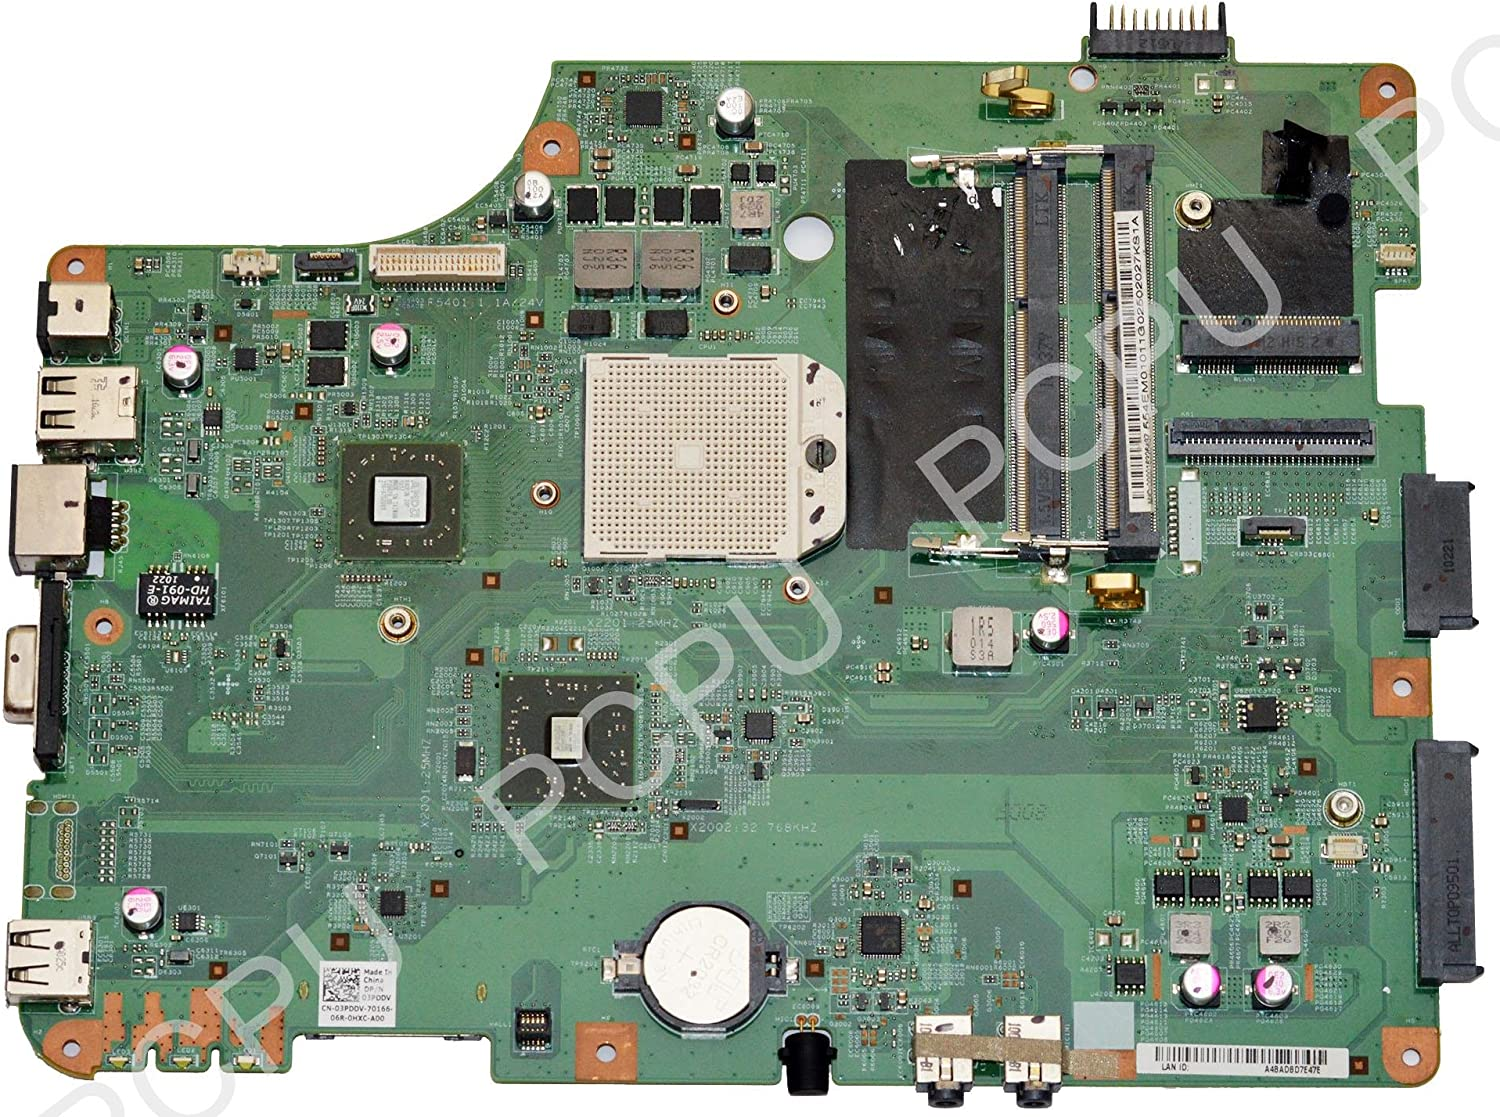 3PDDV Dell Inspiron M5030 AMD Laptop Motherboard s1